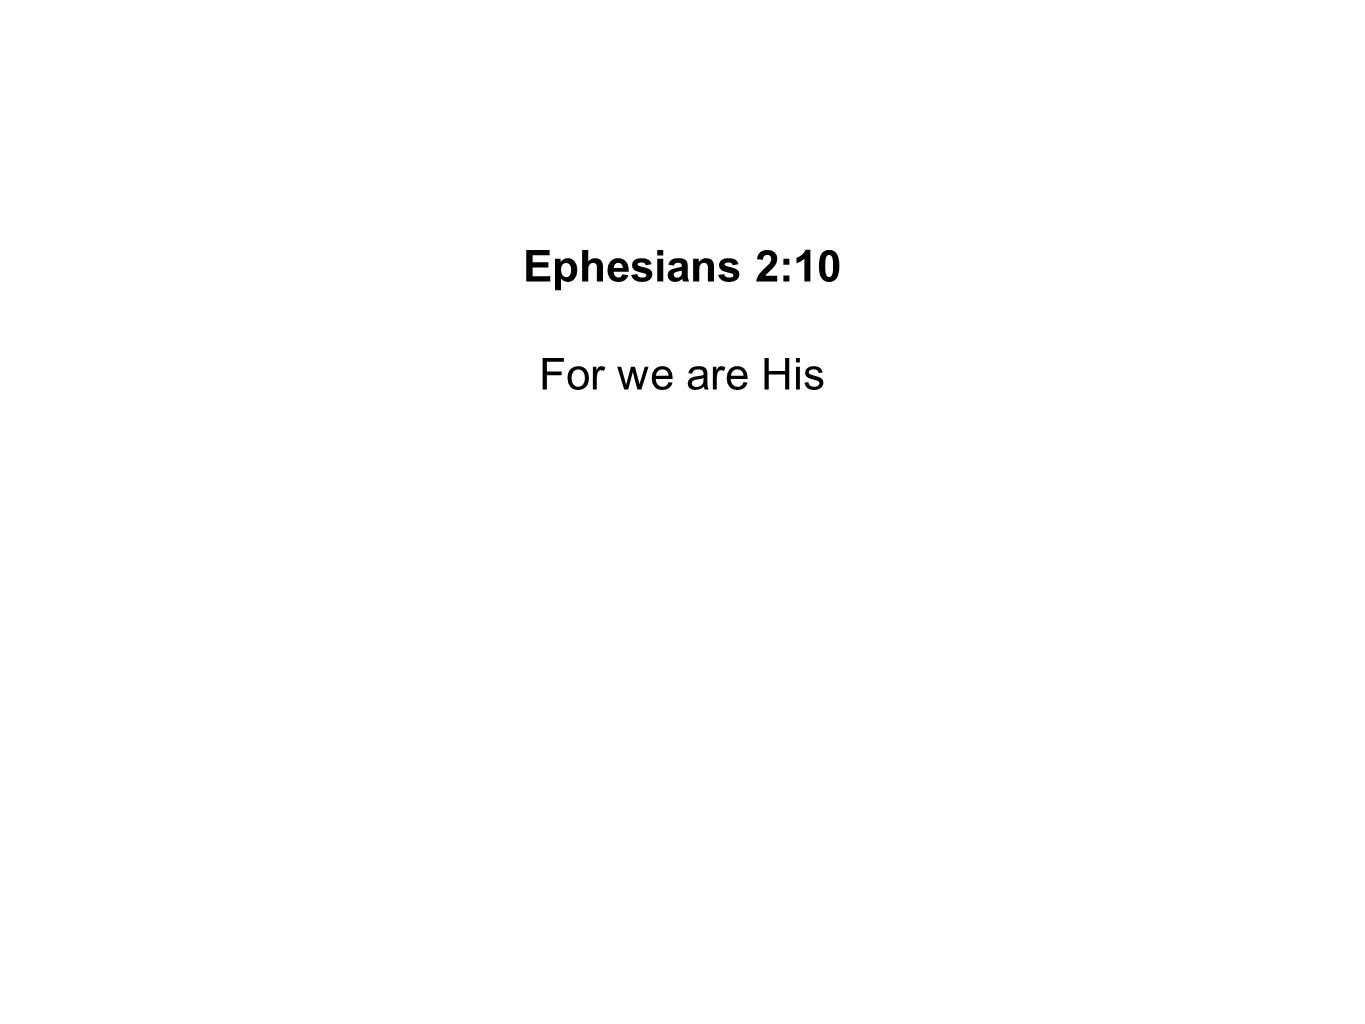 Ephesians 2:10 For we are His